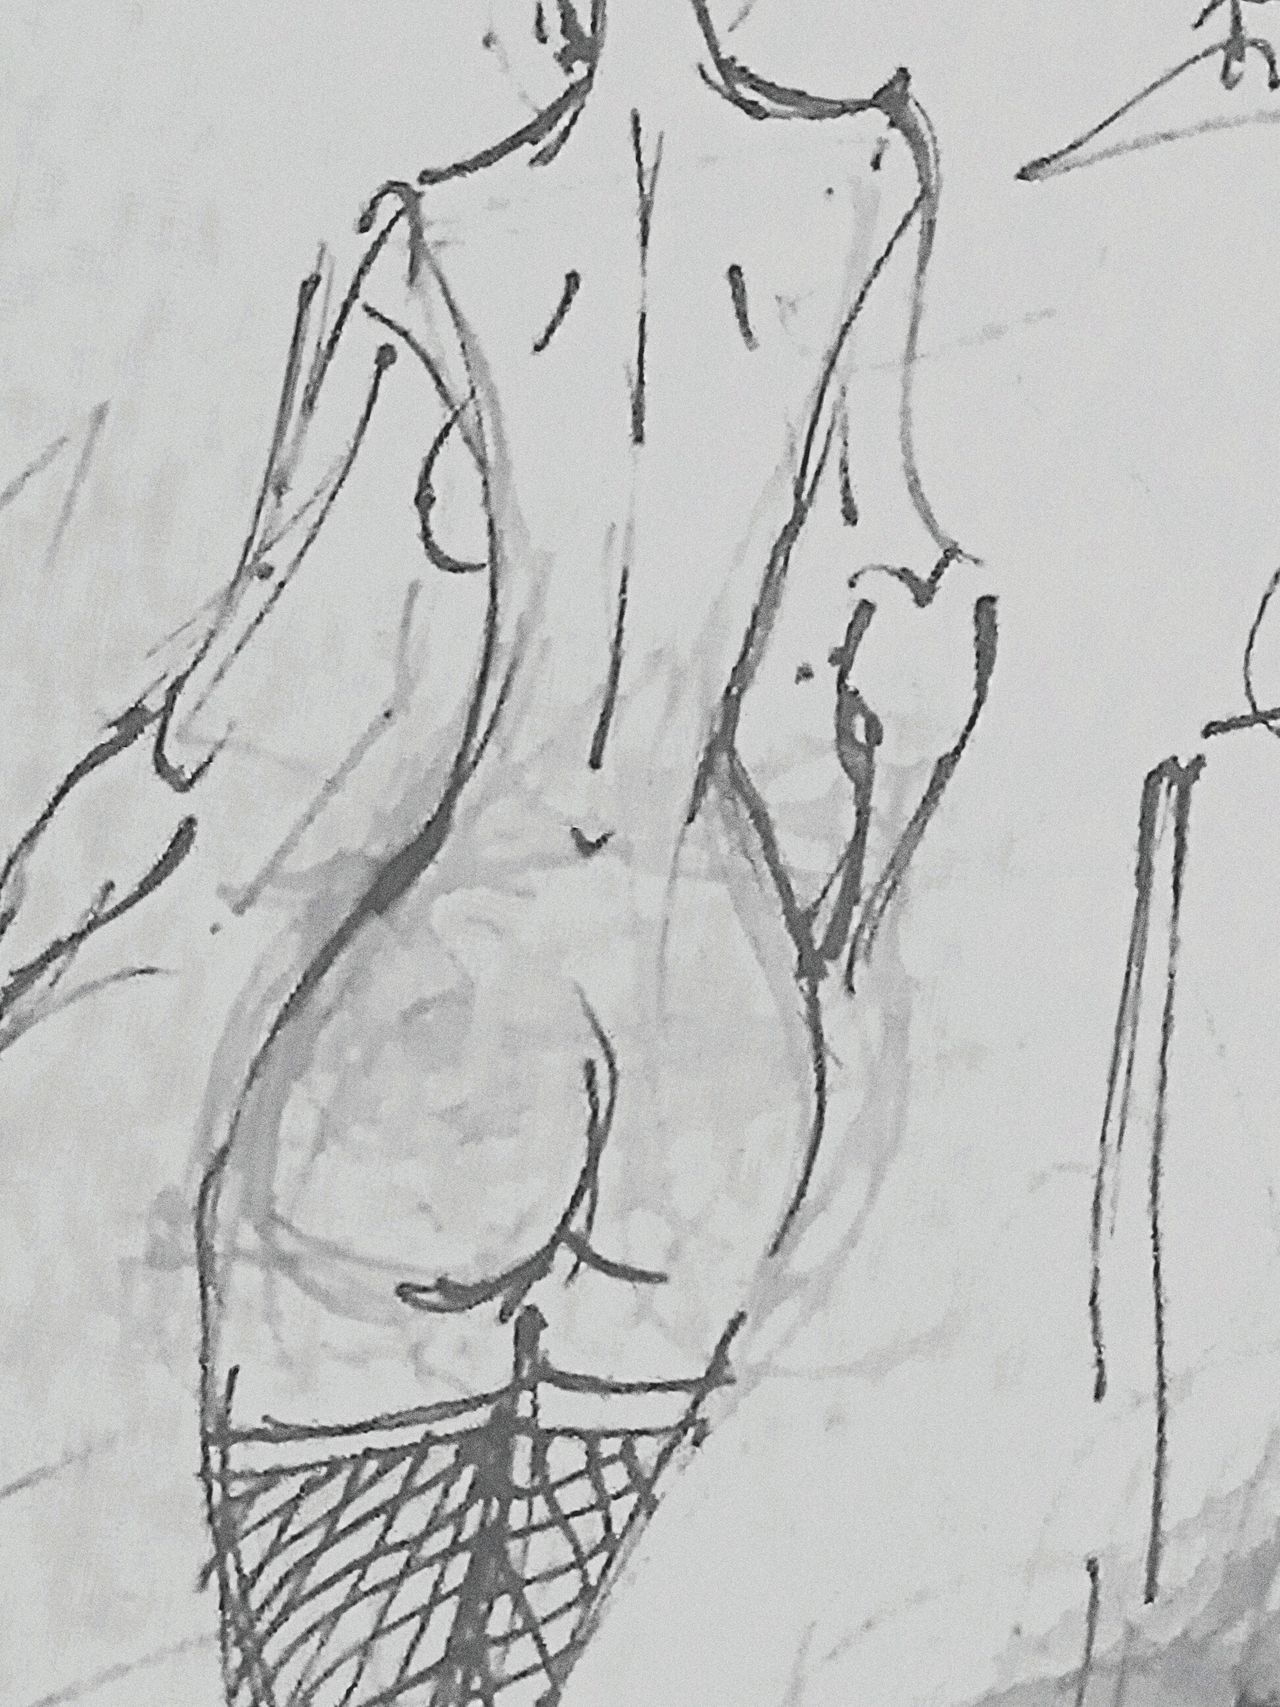 drawing, Close-up Abstract Human Figure